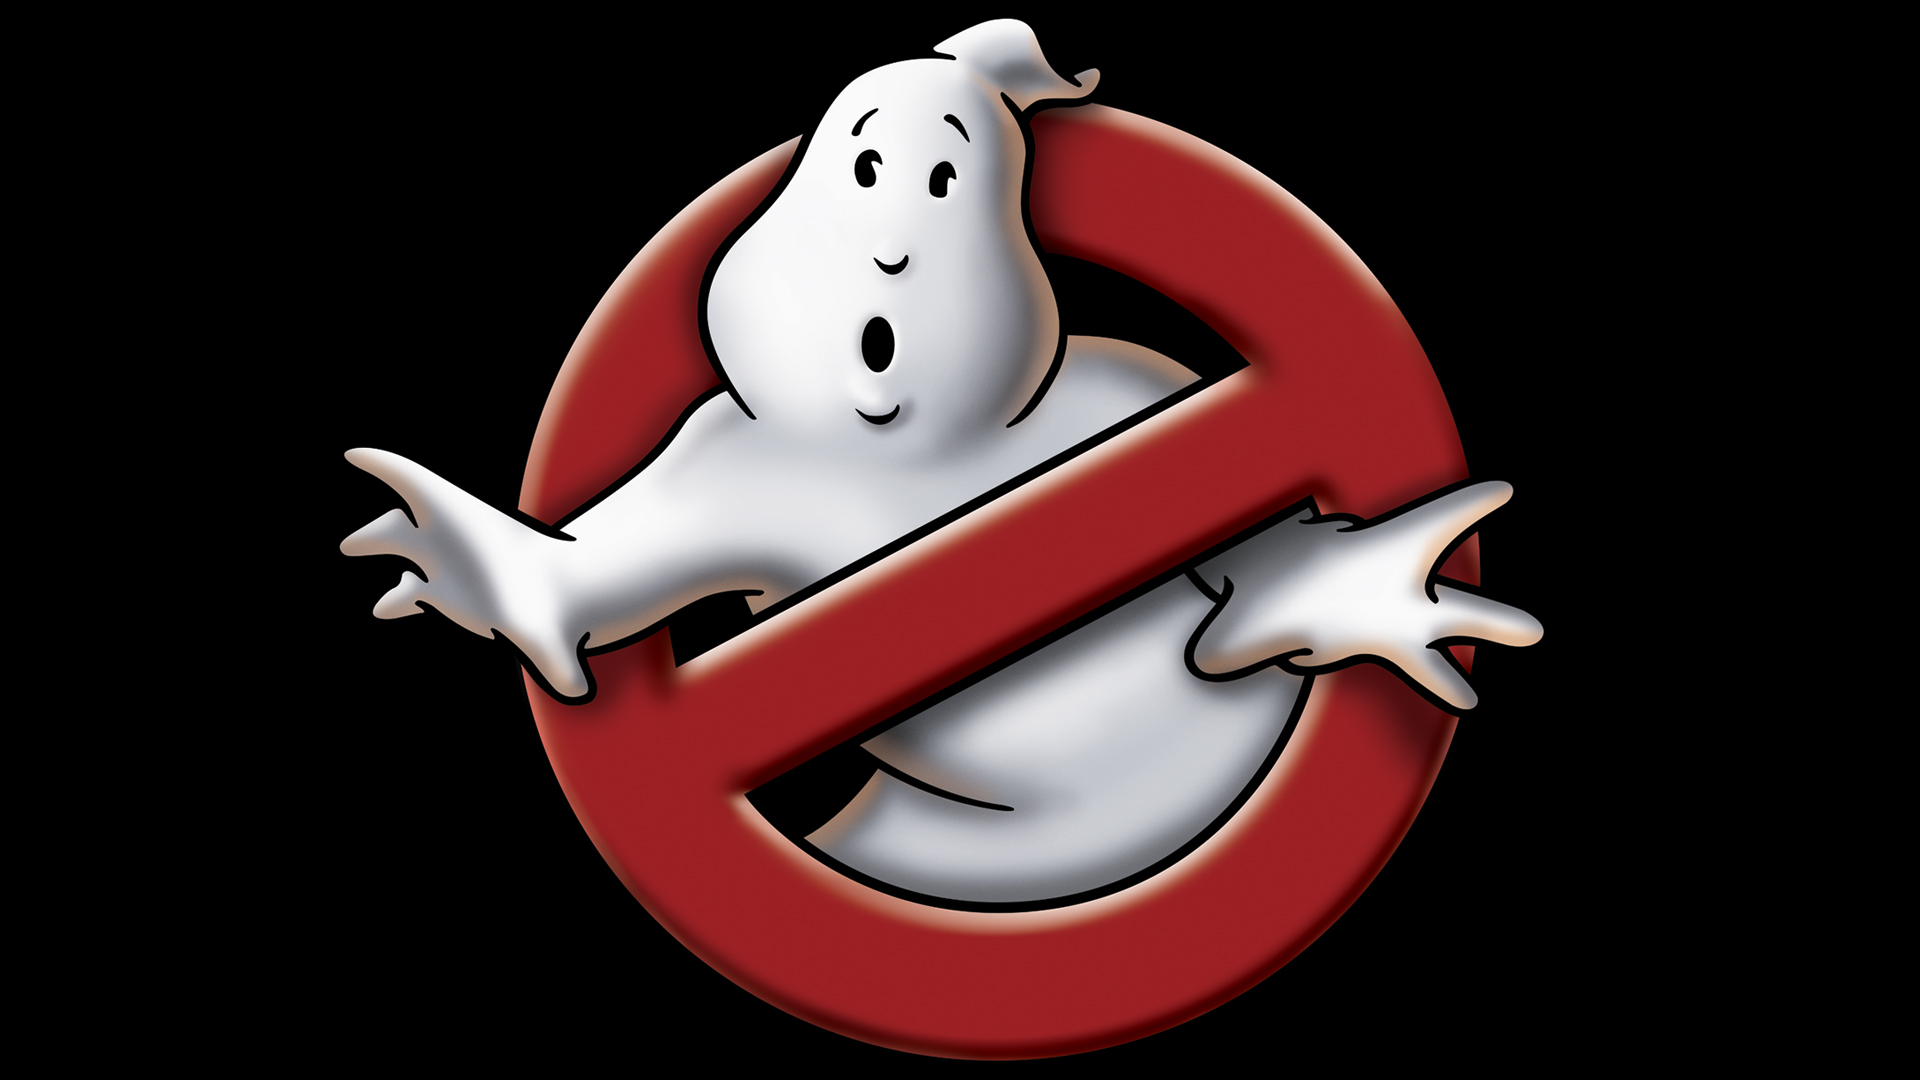 Ghostbusters humor ghost wallpaper 1920x1080 101941 - Ghostbusters wallpaper ...